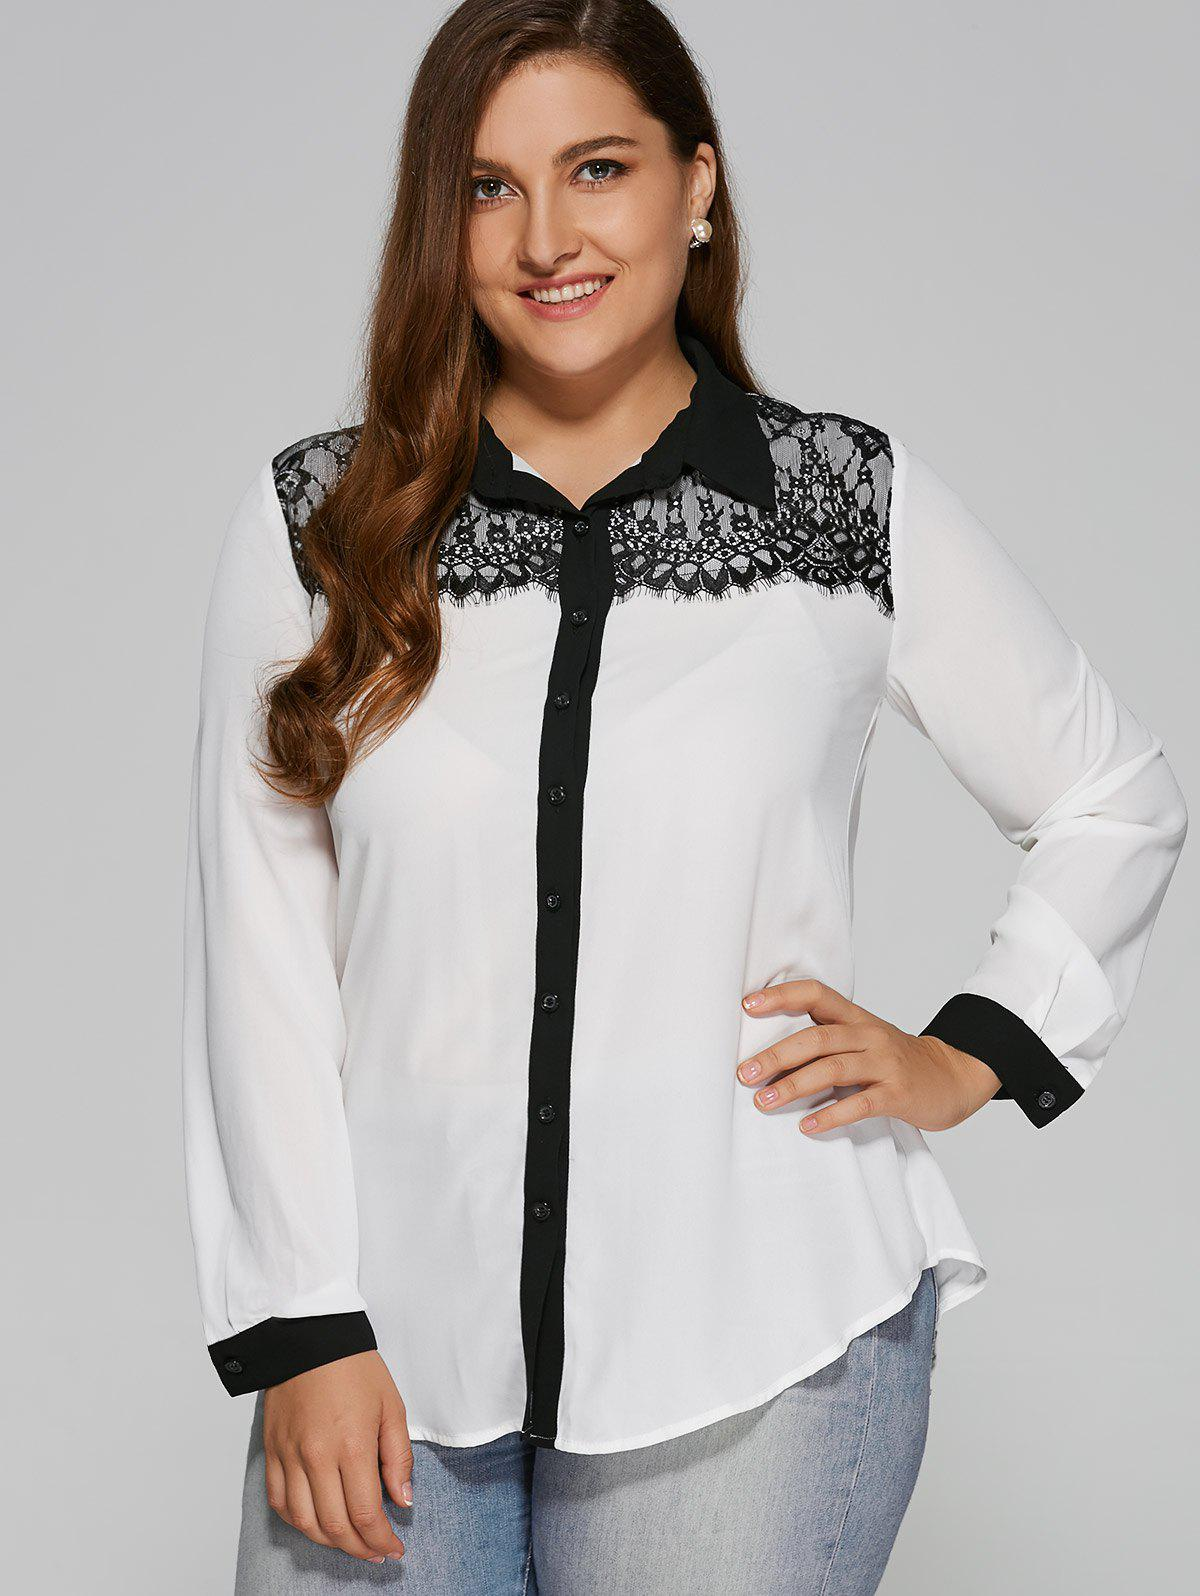 Plus Size Lace Patchwork Contrast Trim Shirt contrast lace trim slips set